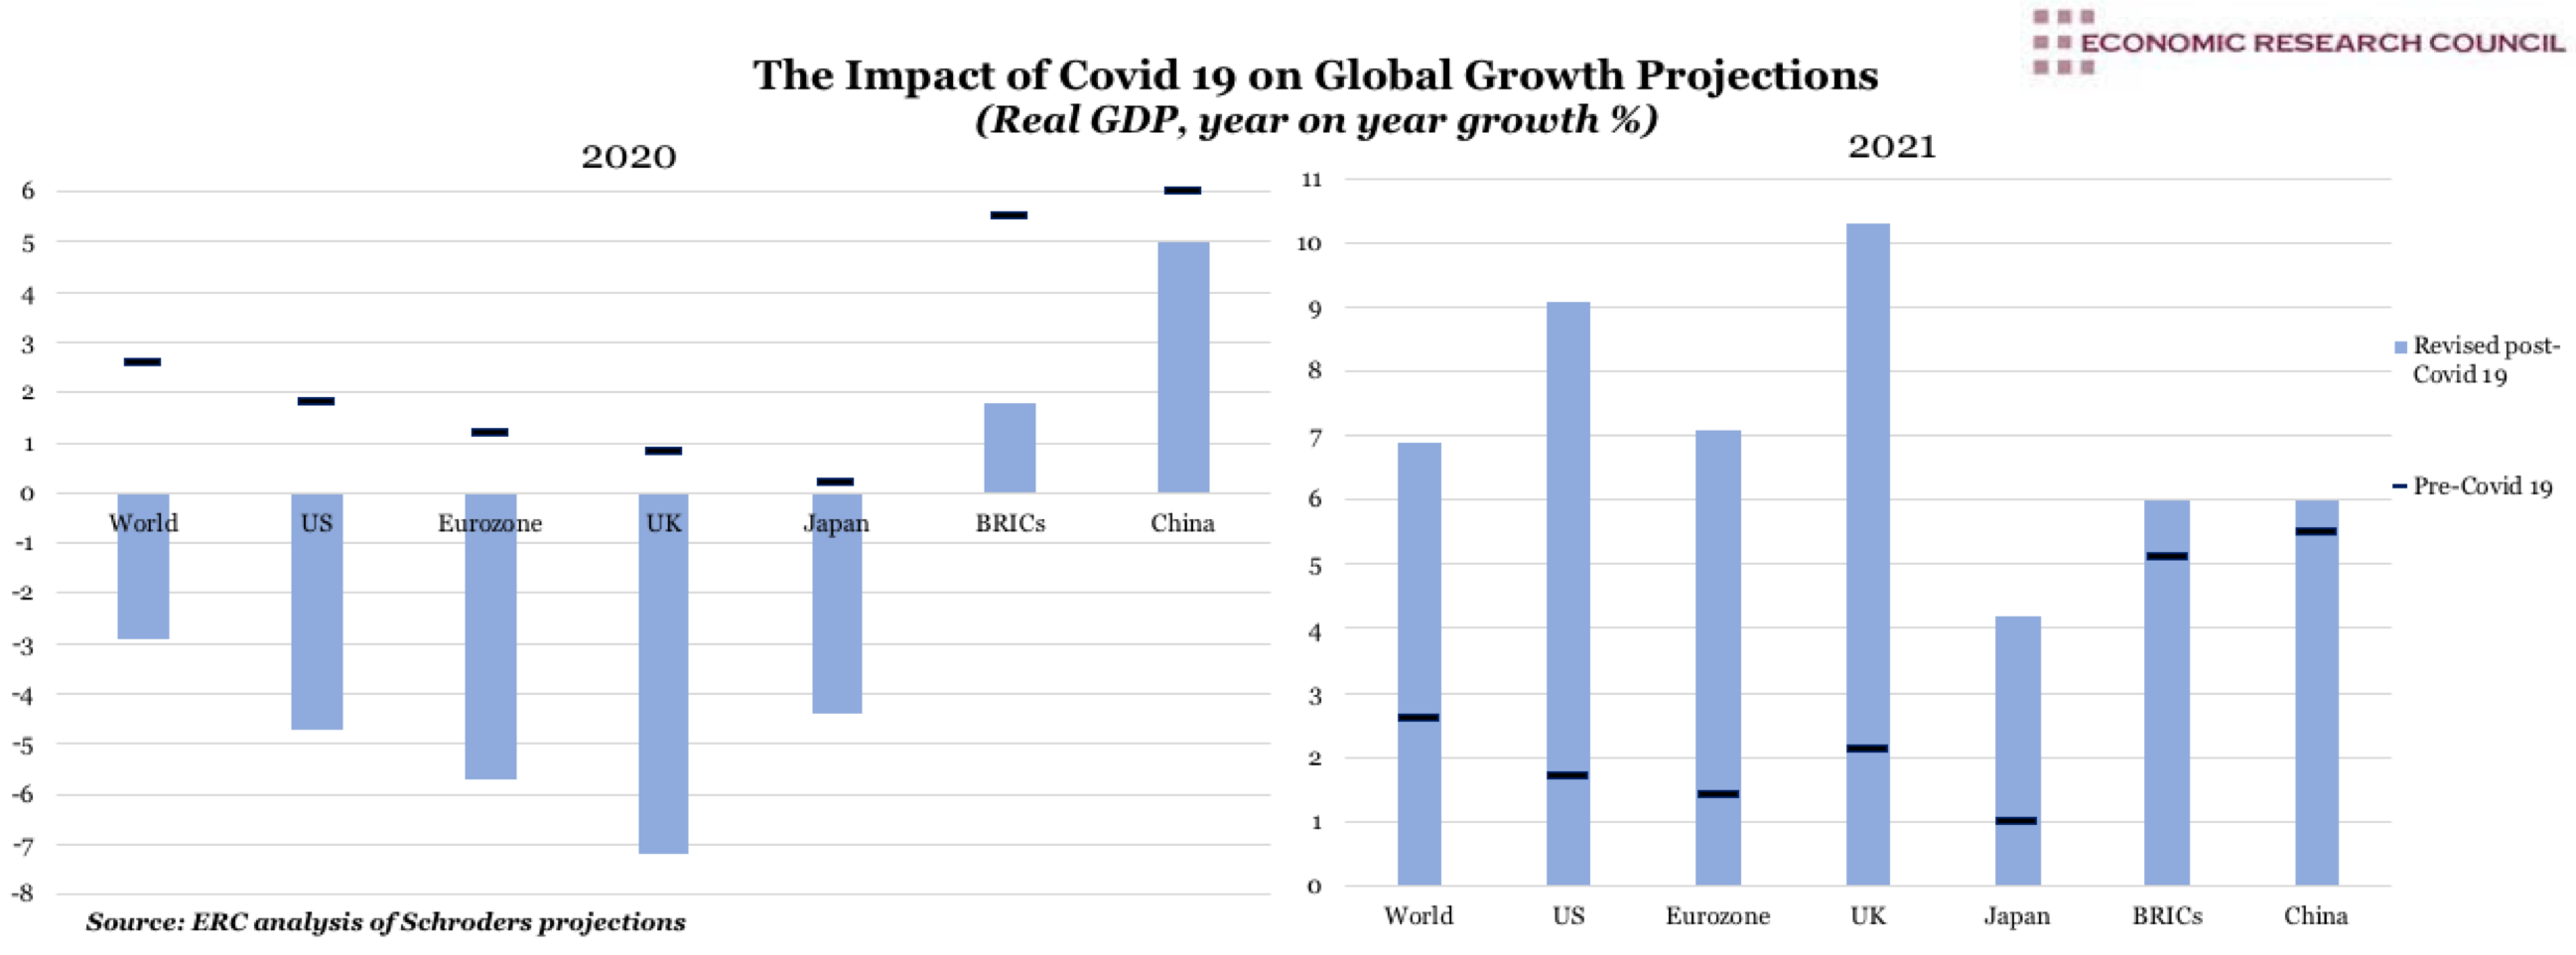 The Impact of Covid 19 on Global Growth Projections